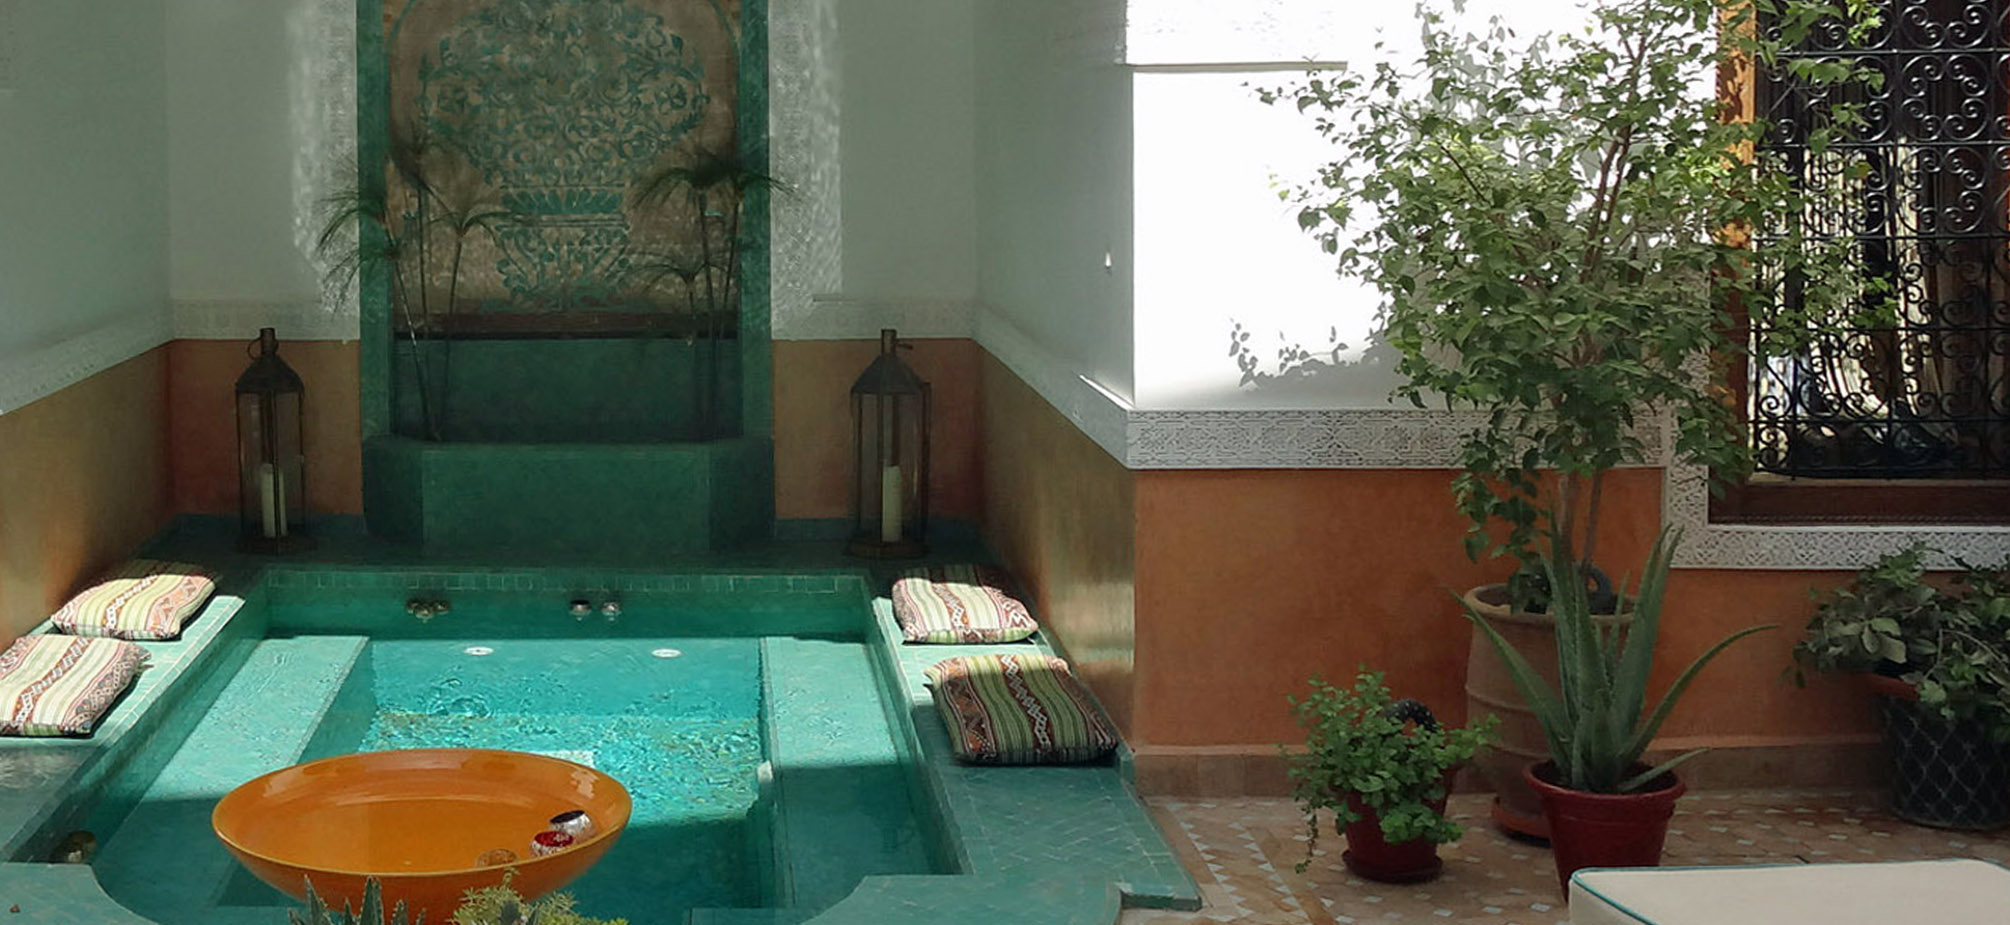 2. Gallery Riad Pool